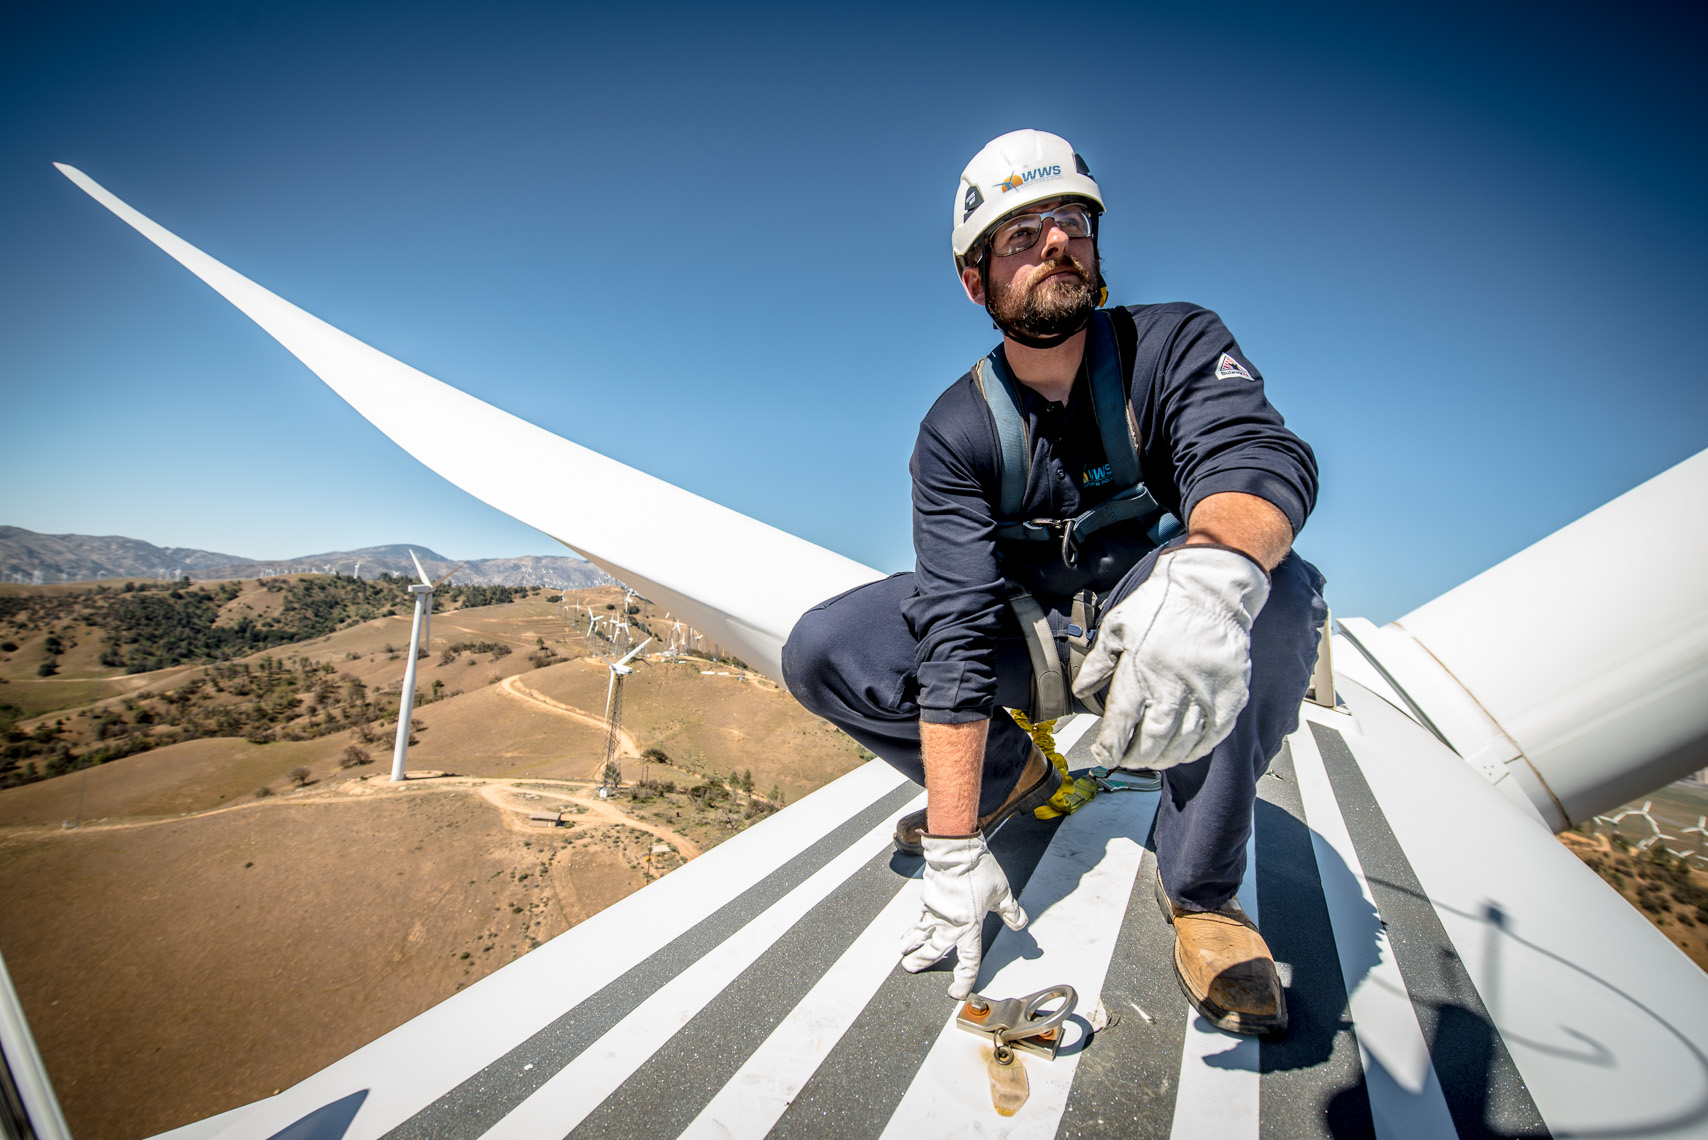 Renewable Energy Construction | Wind Turbine Technician | Clean Energy Photography